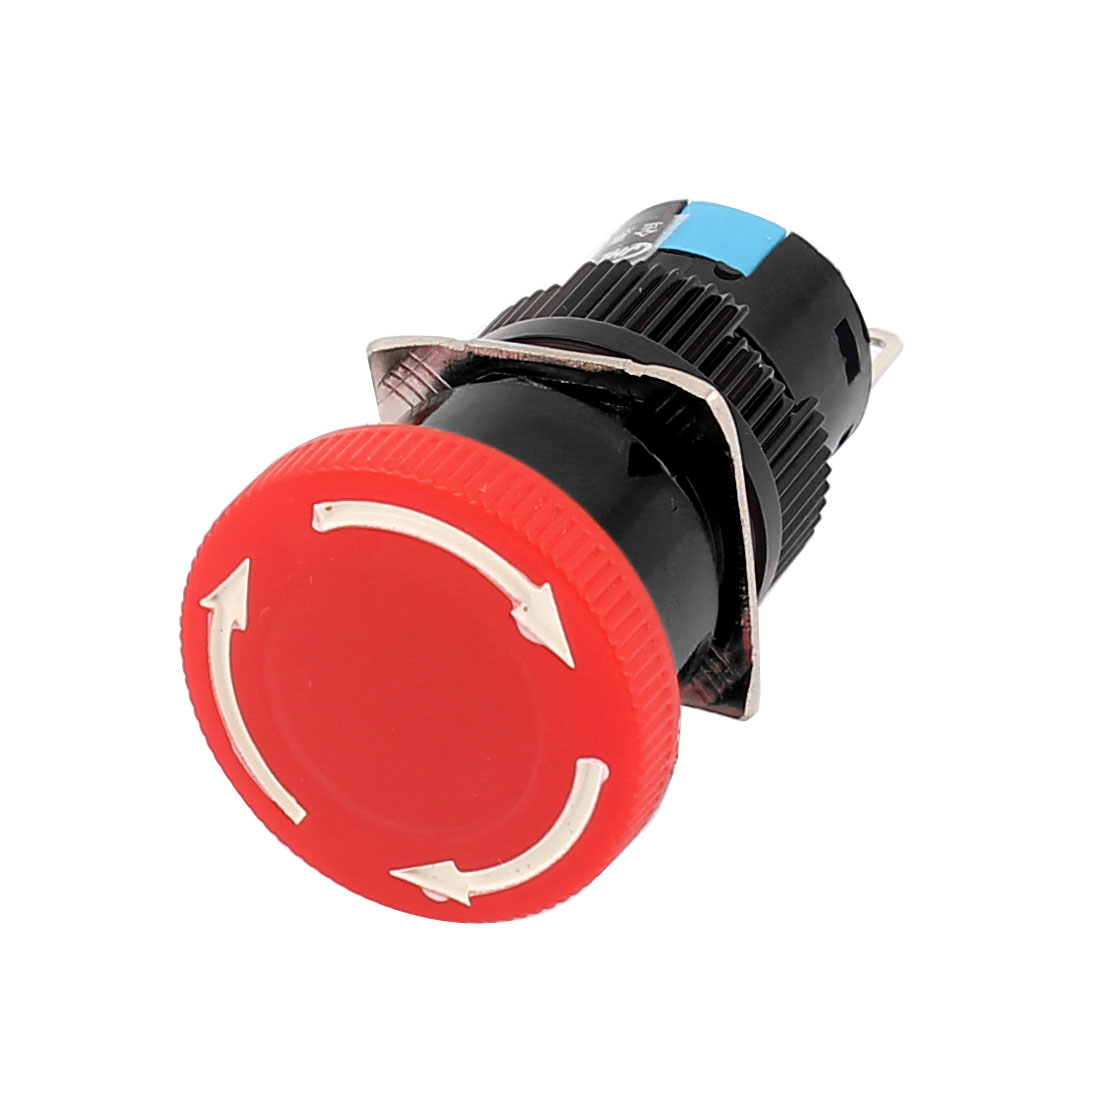 AC 250V 3A DC 30V 5A Panel Mounting SPST Rotary Reset Emergency Stop Red Head Push Button Pushbutton Switch